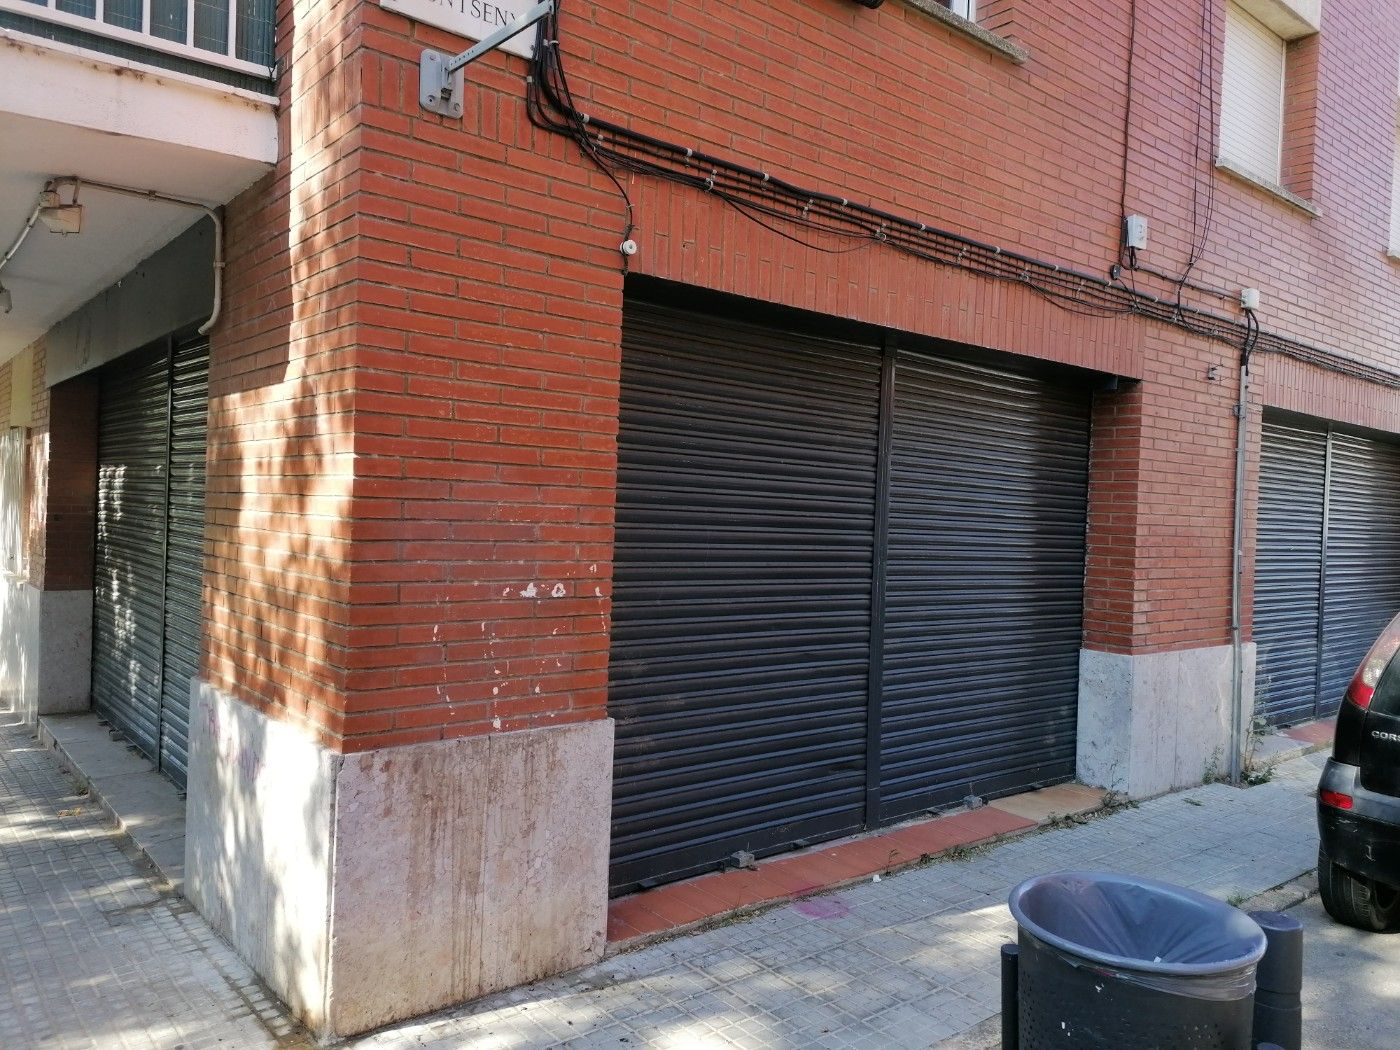 Local Comercial  Passeig hortsavinya. Local comercial